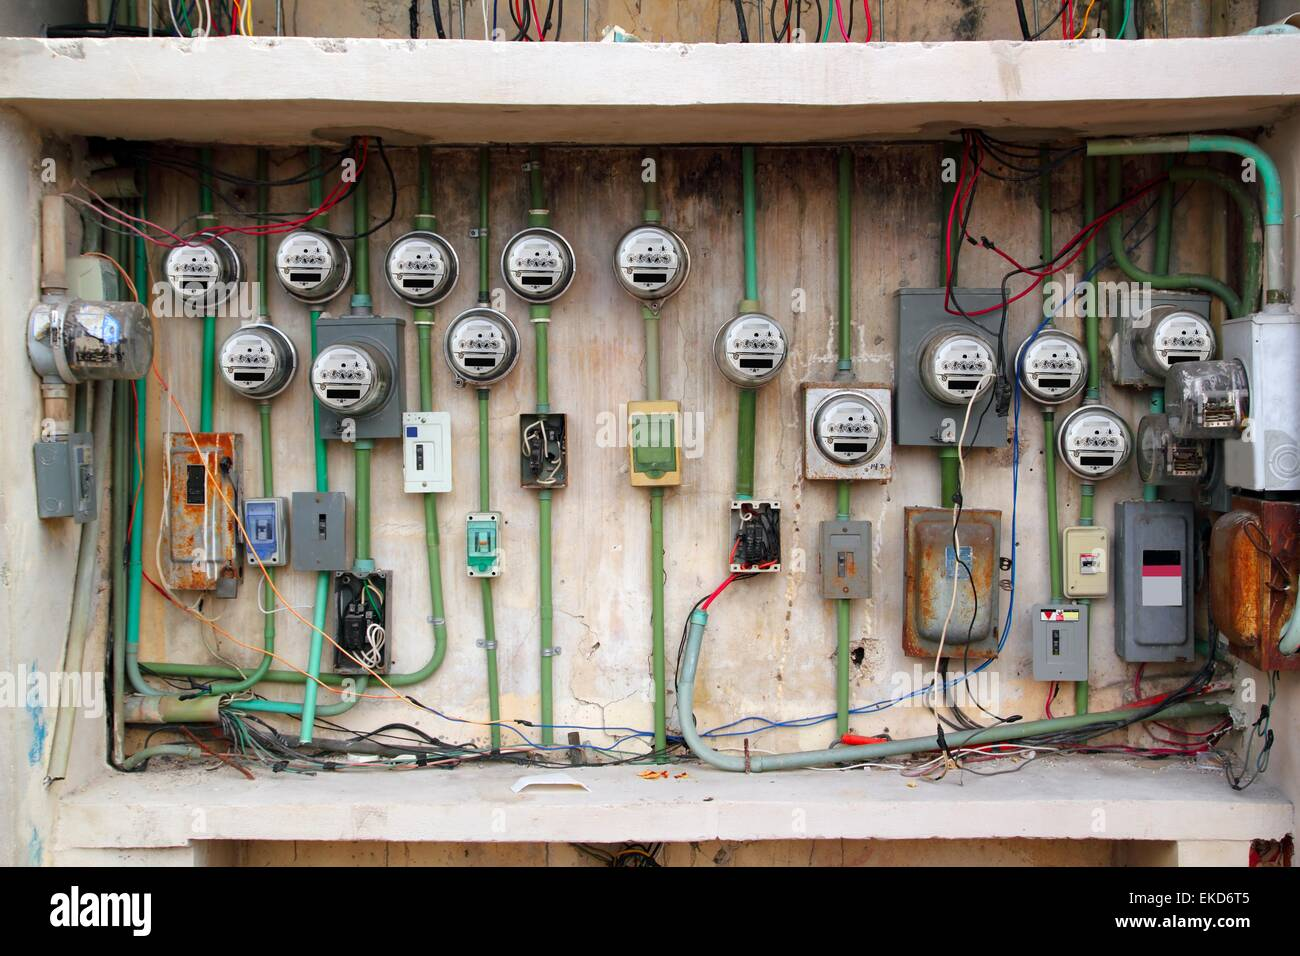 Faulty Wiring Stock Photos Images Alamy Diy Electrical Shed Electric Meter Messy Installation Image